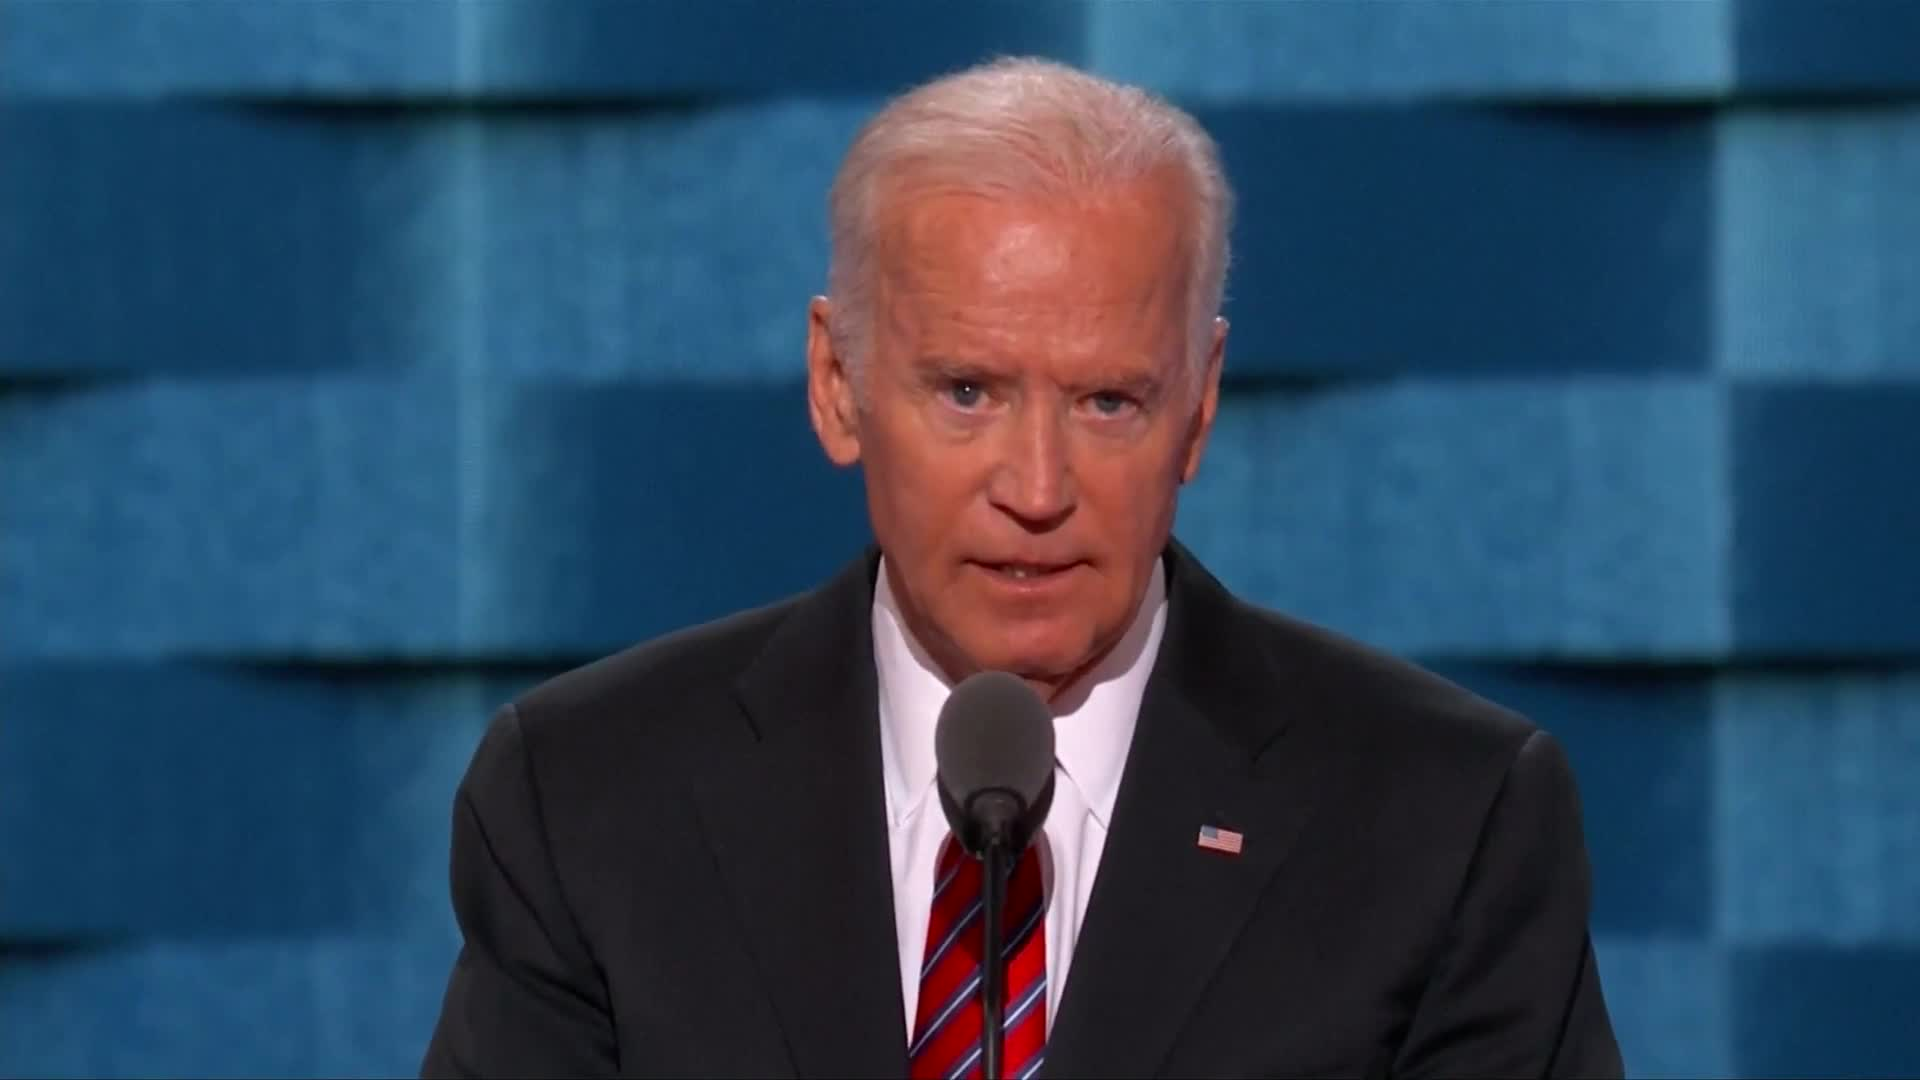 Biden attacks Trump on national security